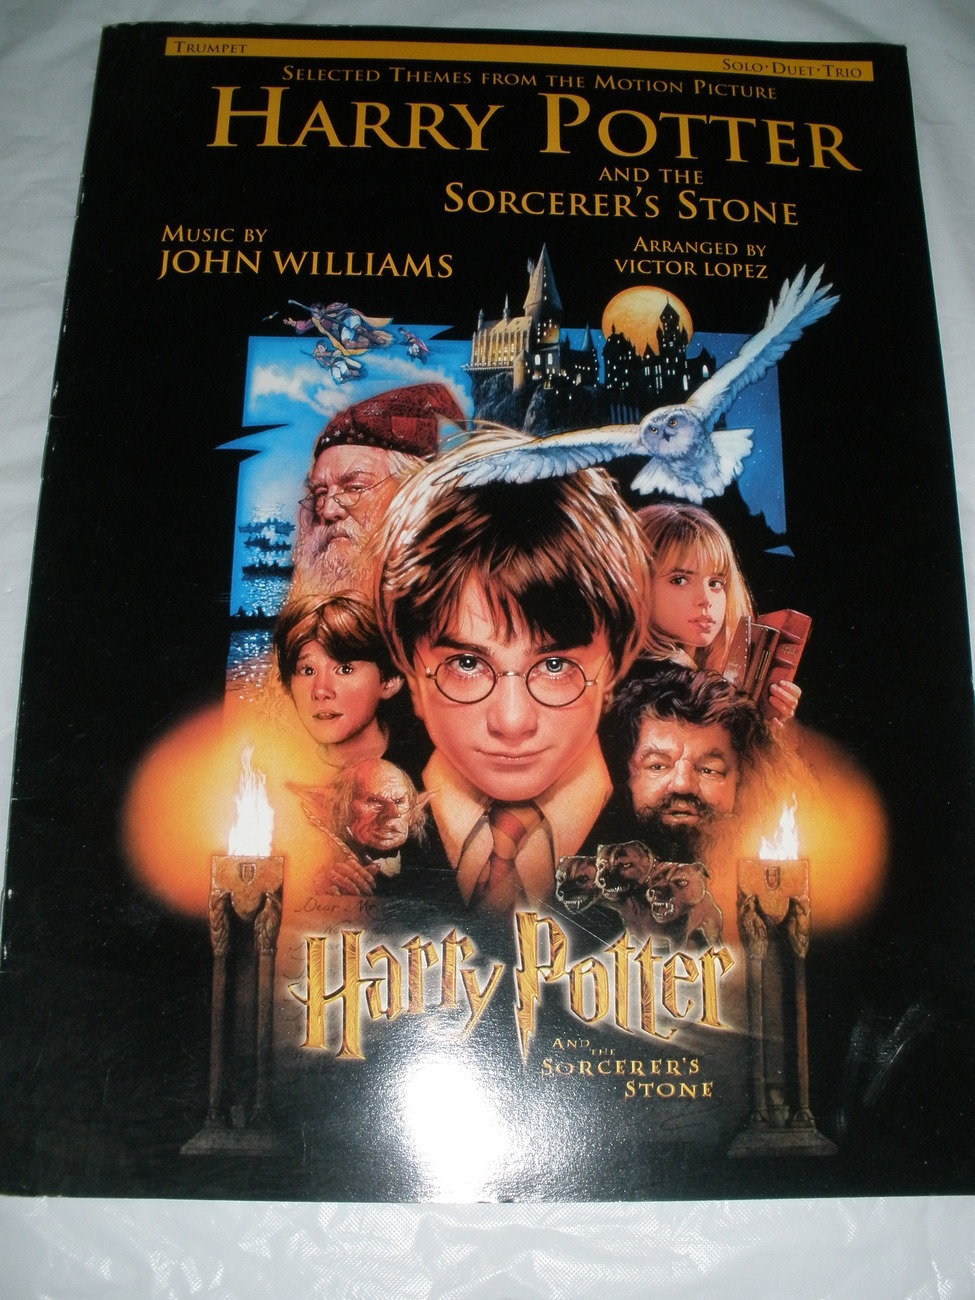 Harry potter themes   williams lopez   trpt bk